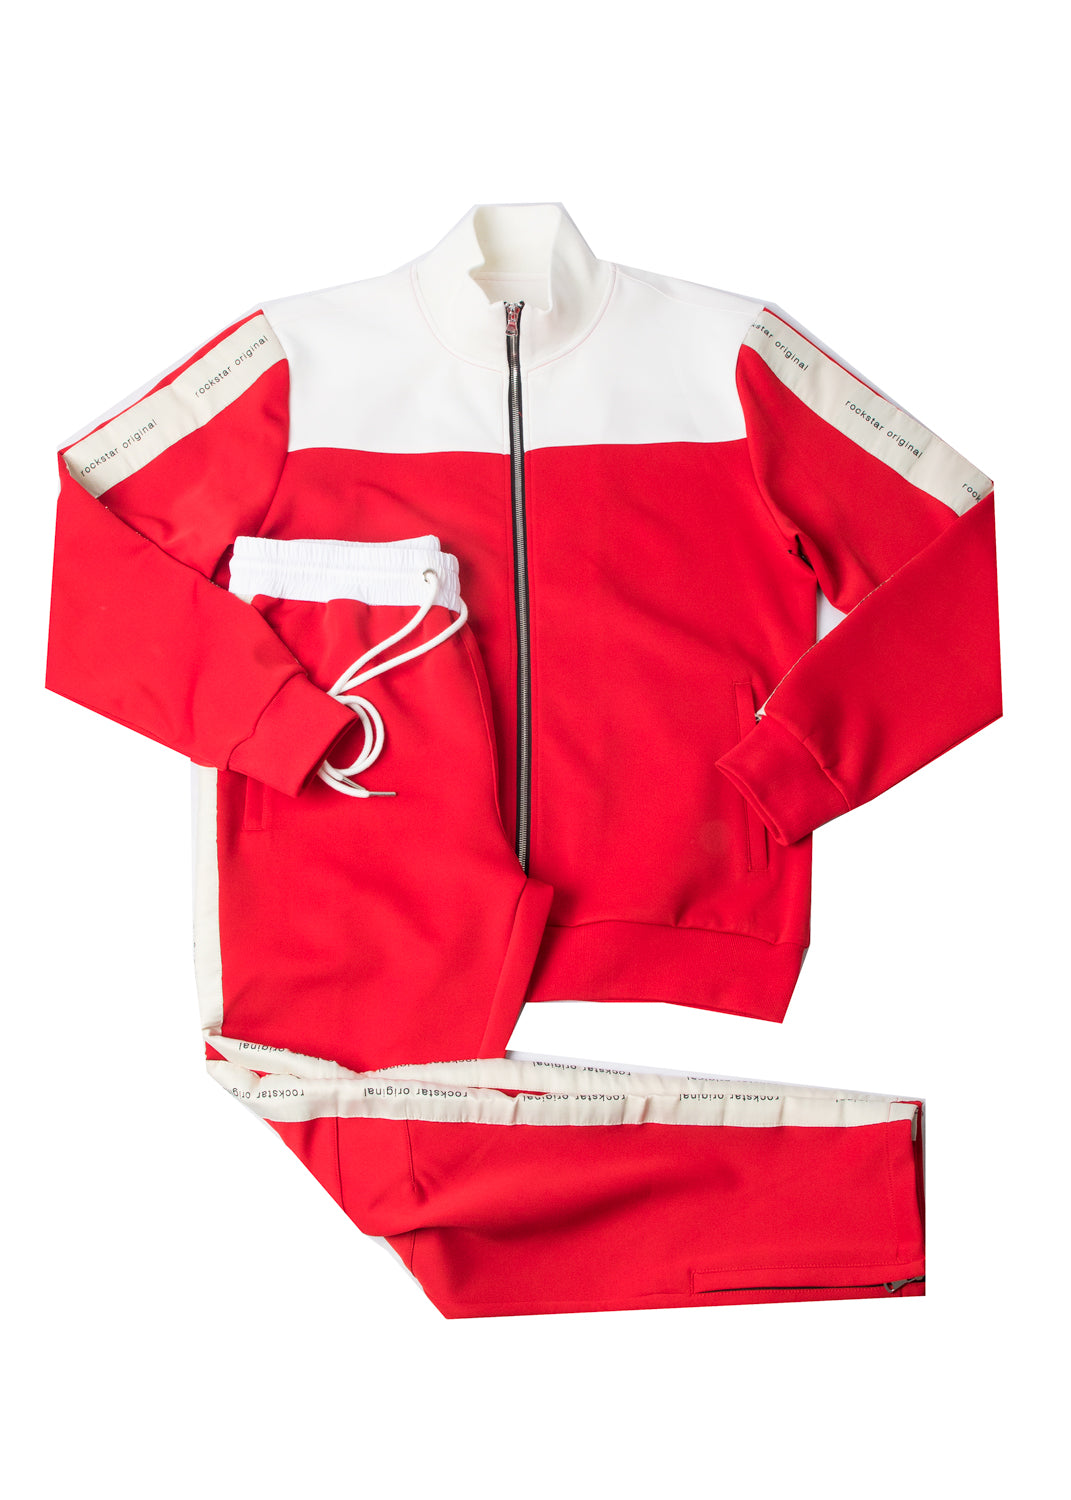 Nobu Track Suit (Red)